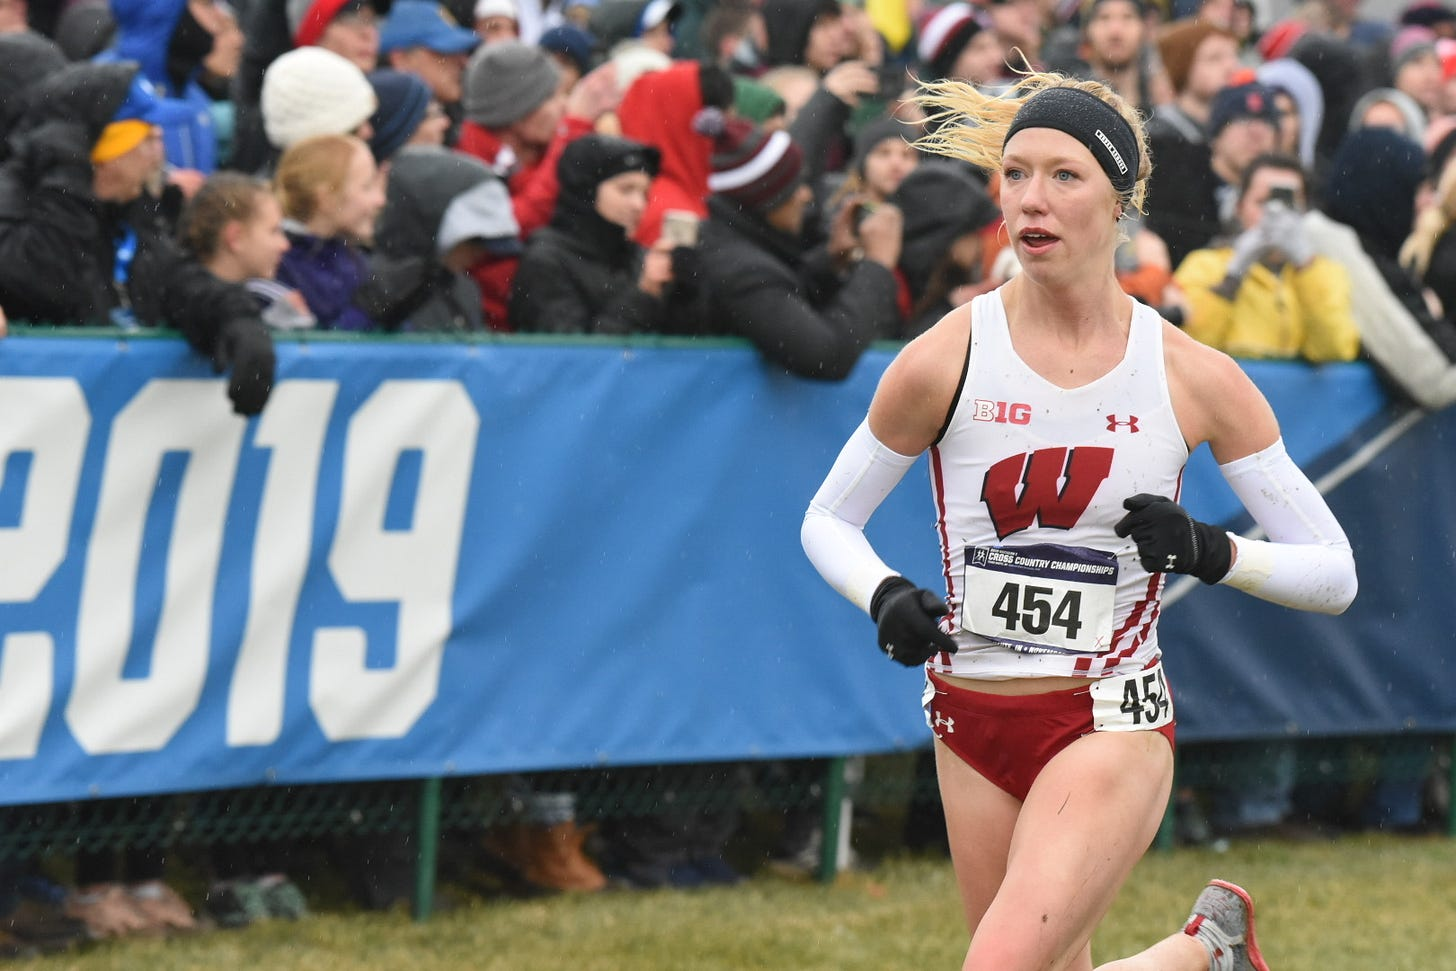 Alicia Monson | Women's Cross Country | Wisconsin Badgers